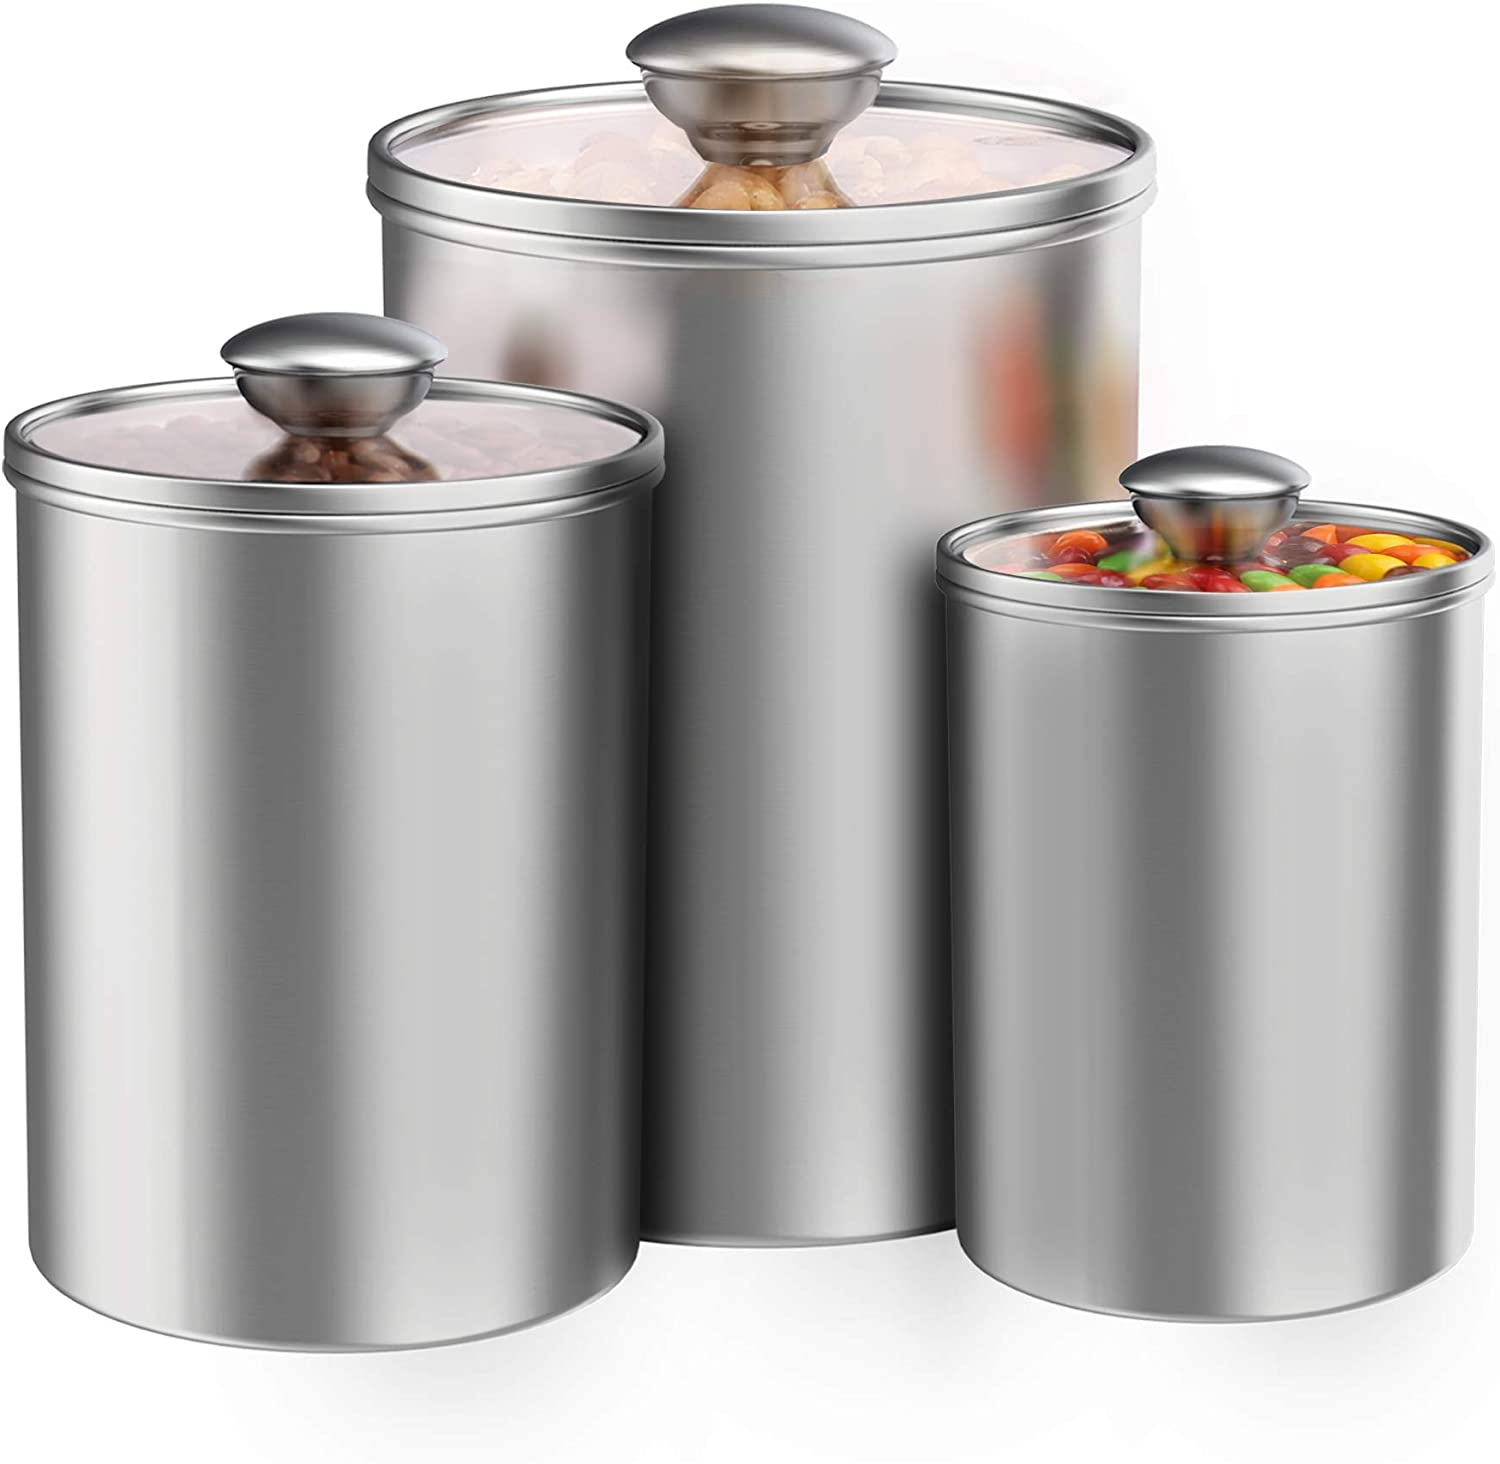 Airtight Canisters Sets for the Kitchen Counter